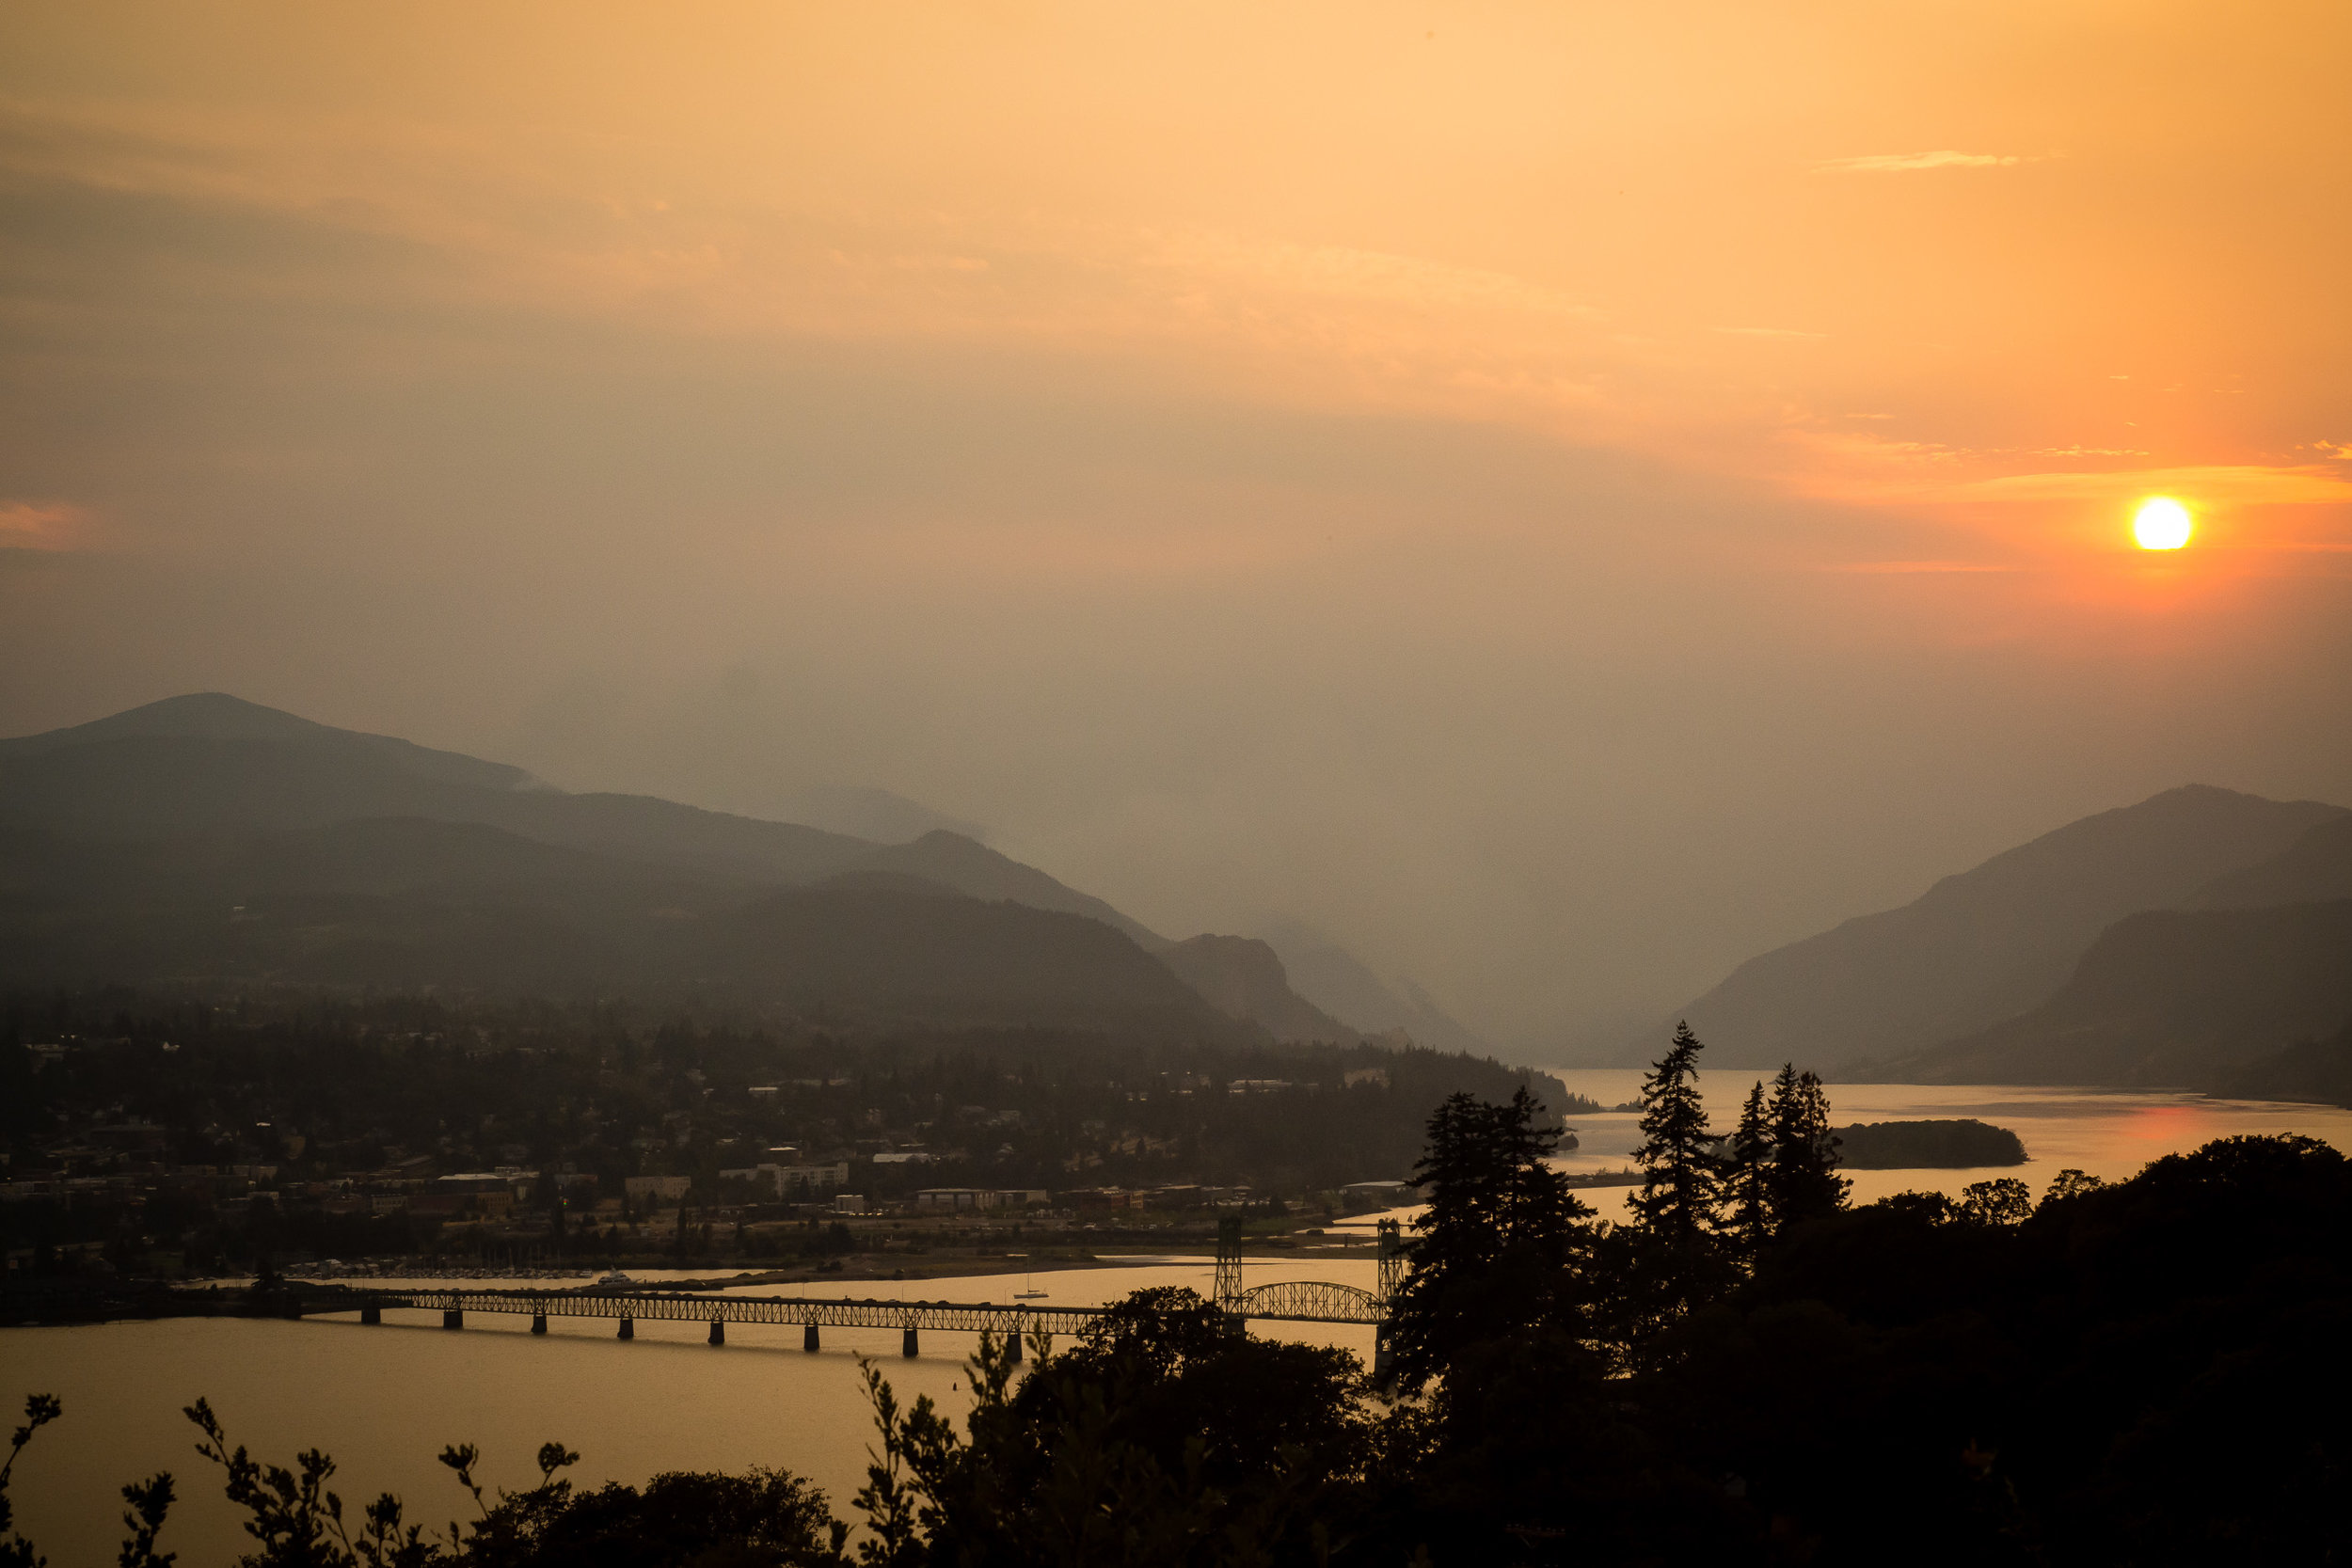 A smokey sunset in the Gorge.